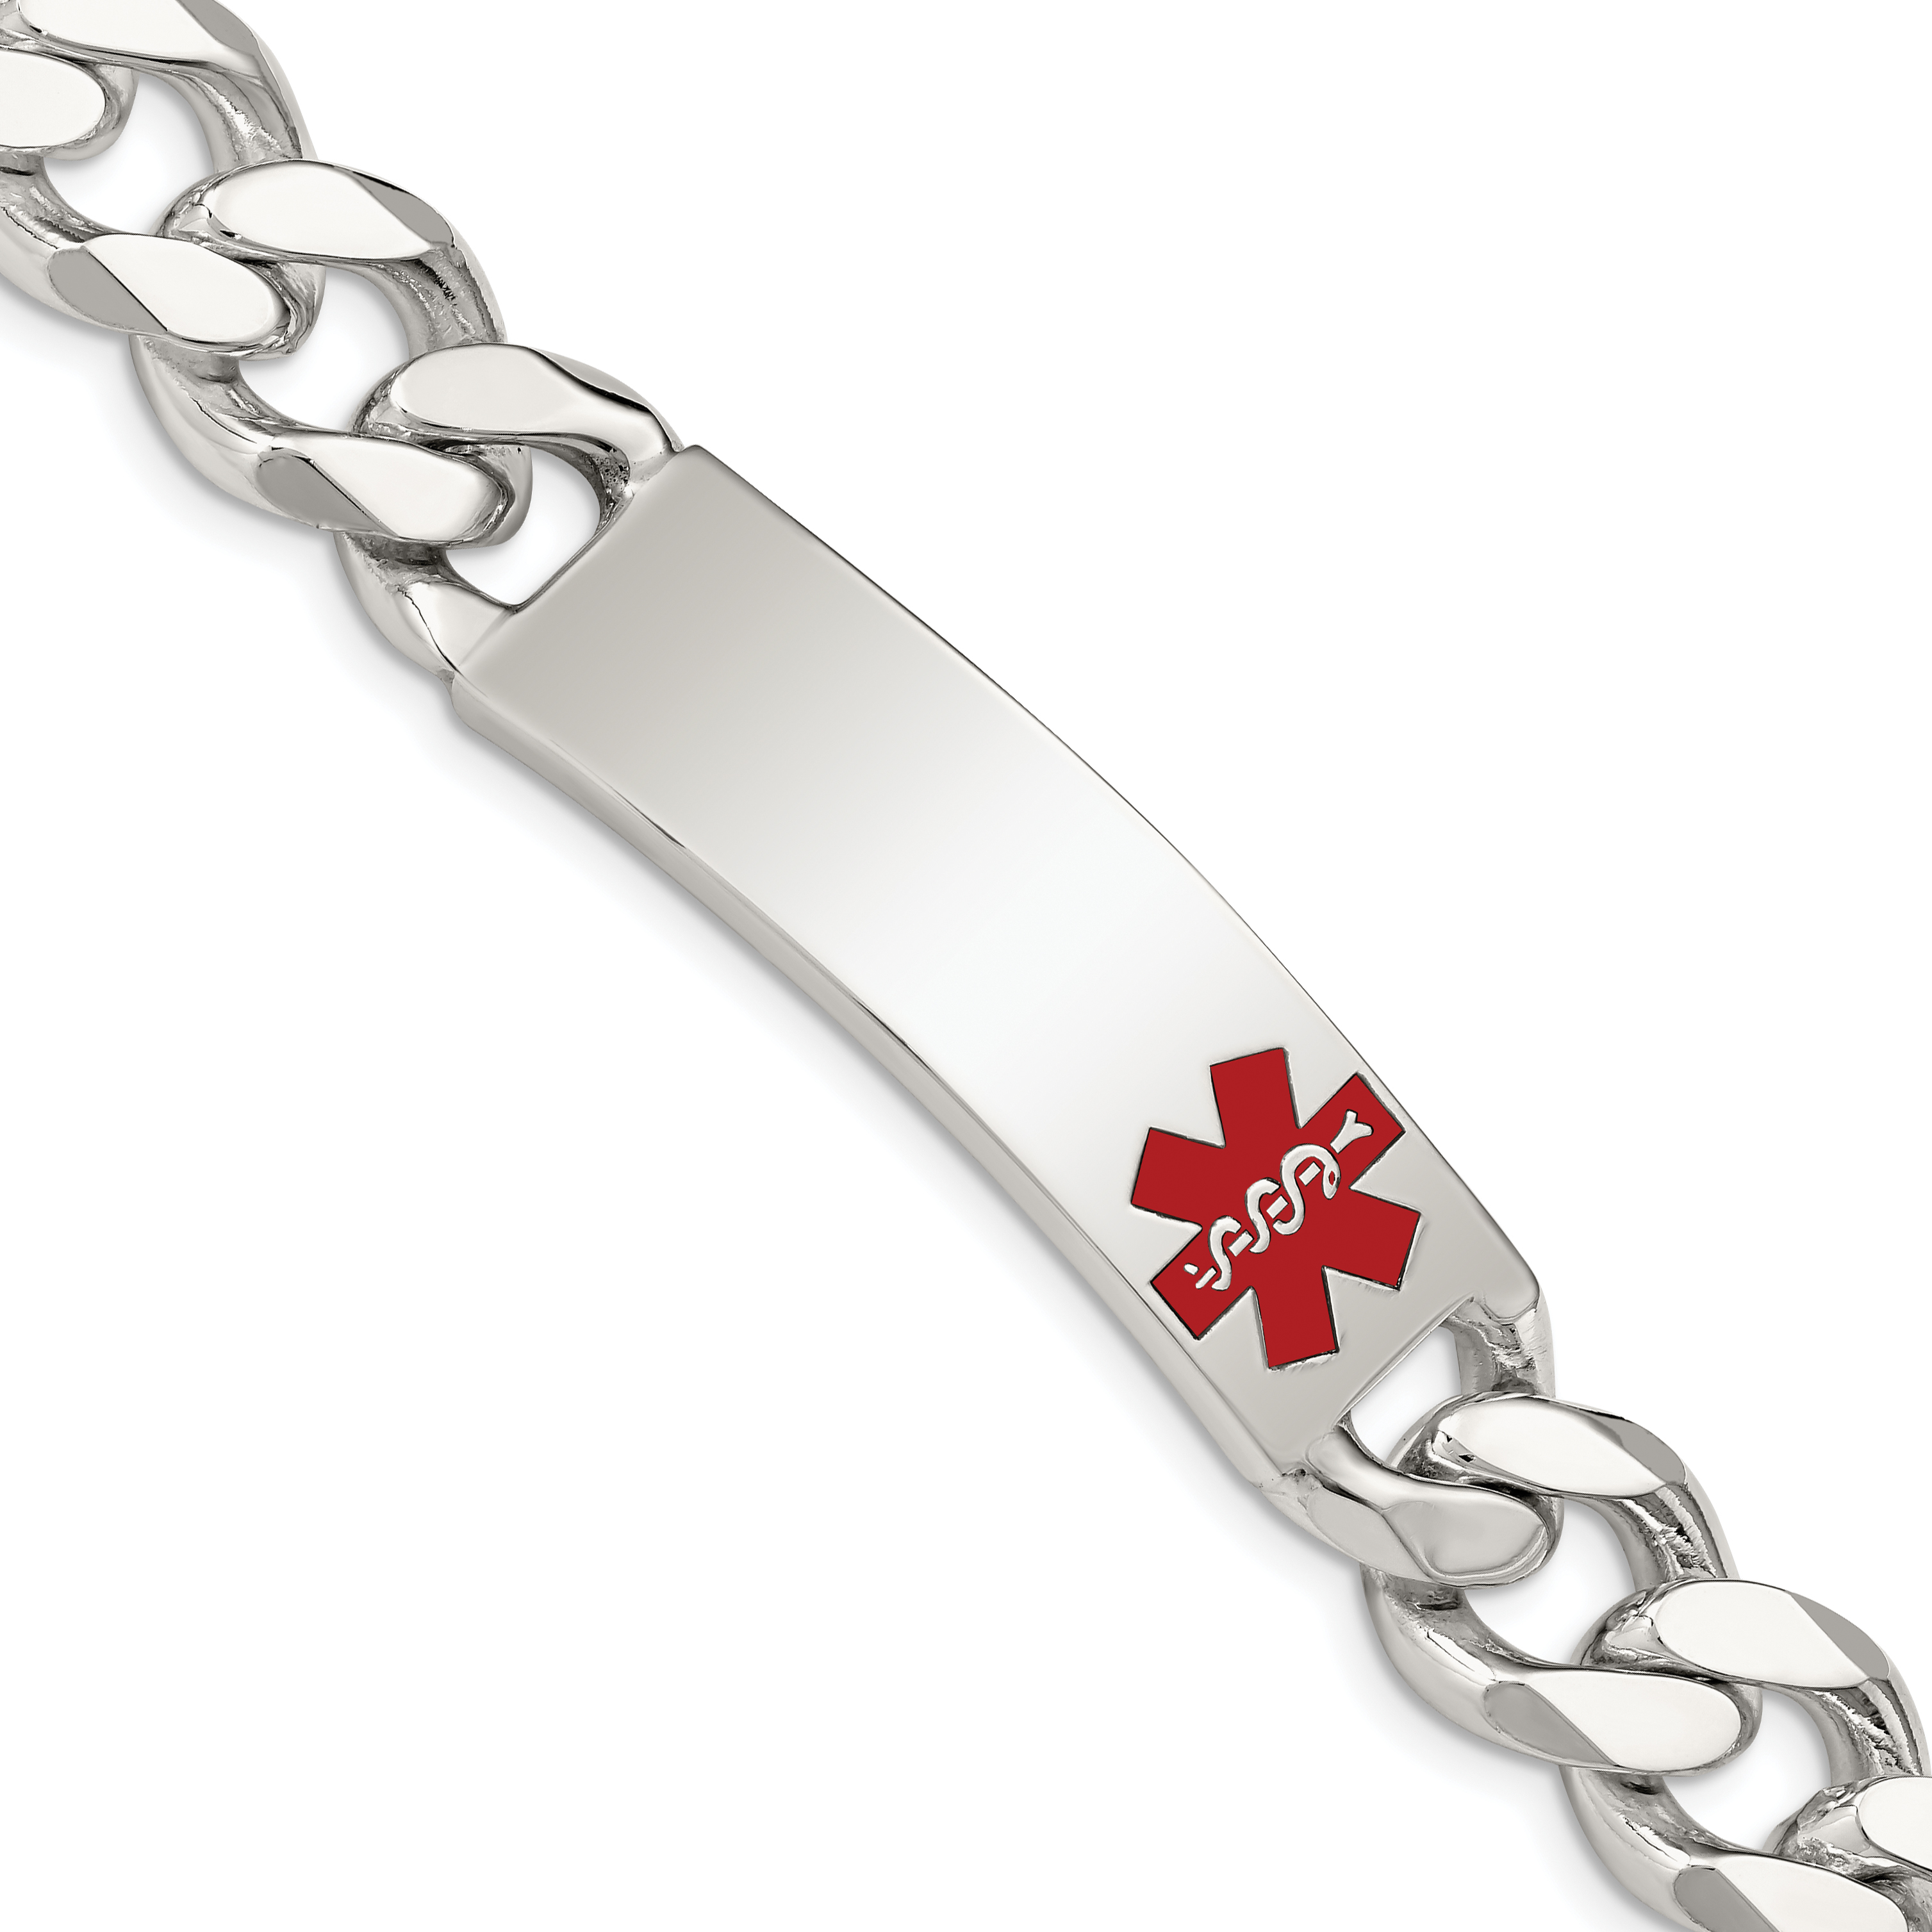 Sterling Silver Polished Medical Anchor Link Id Bracelet Xsm174 Jewelry & Watches